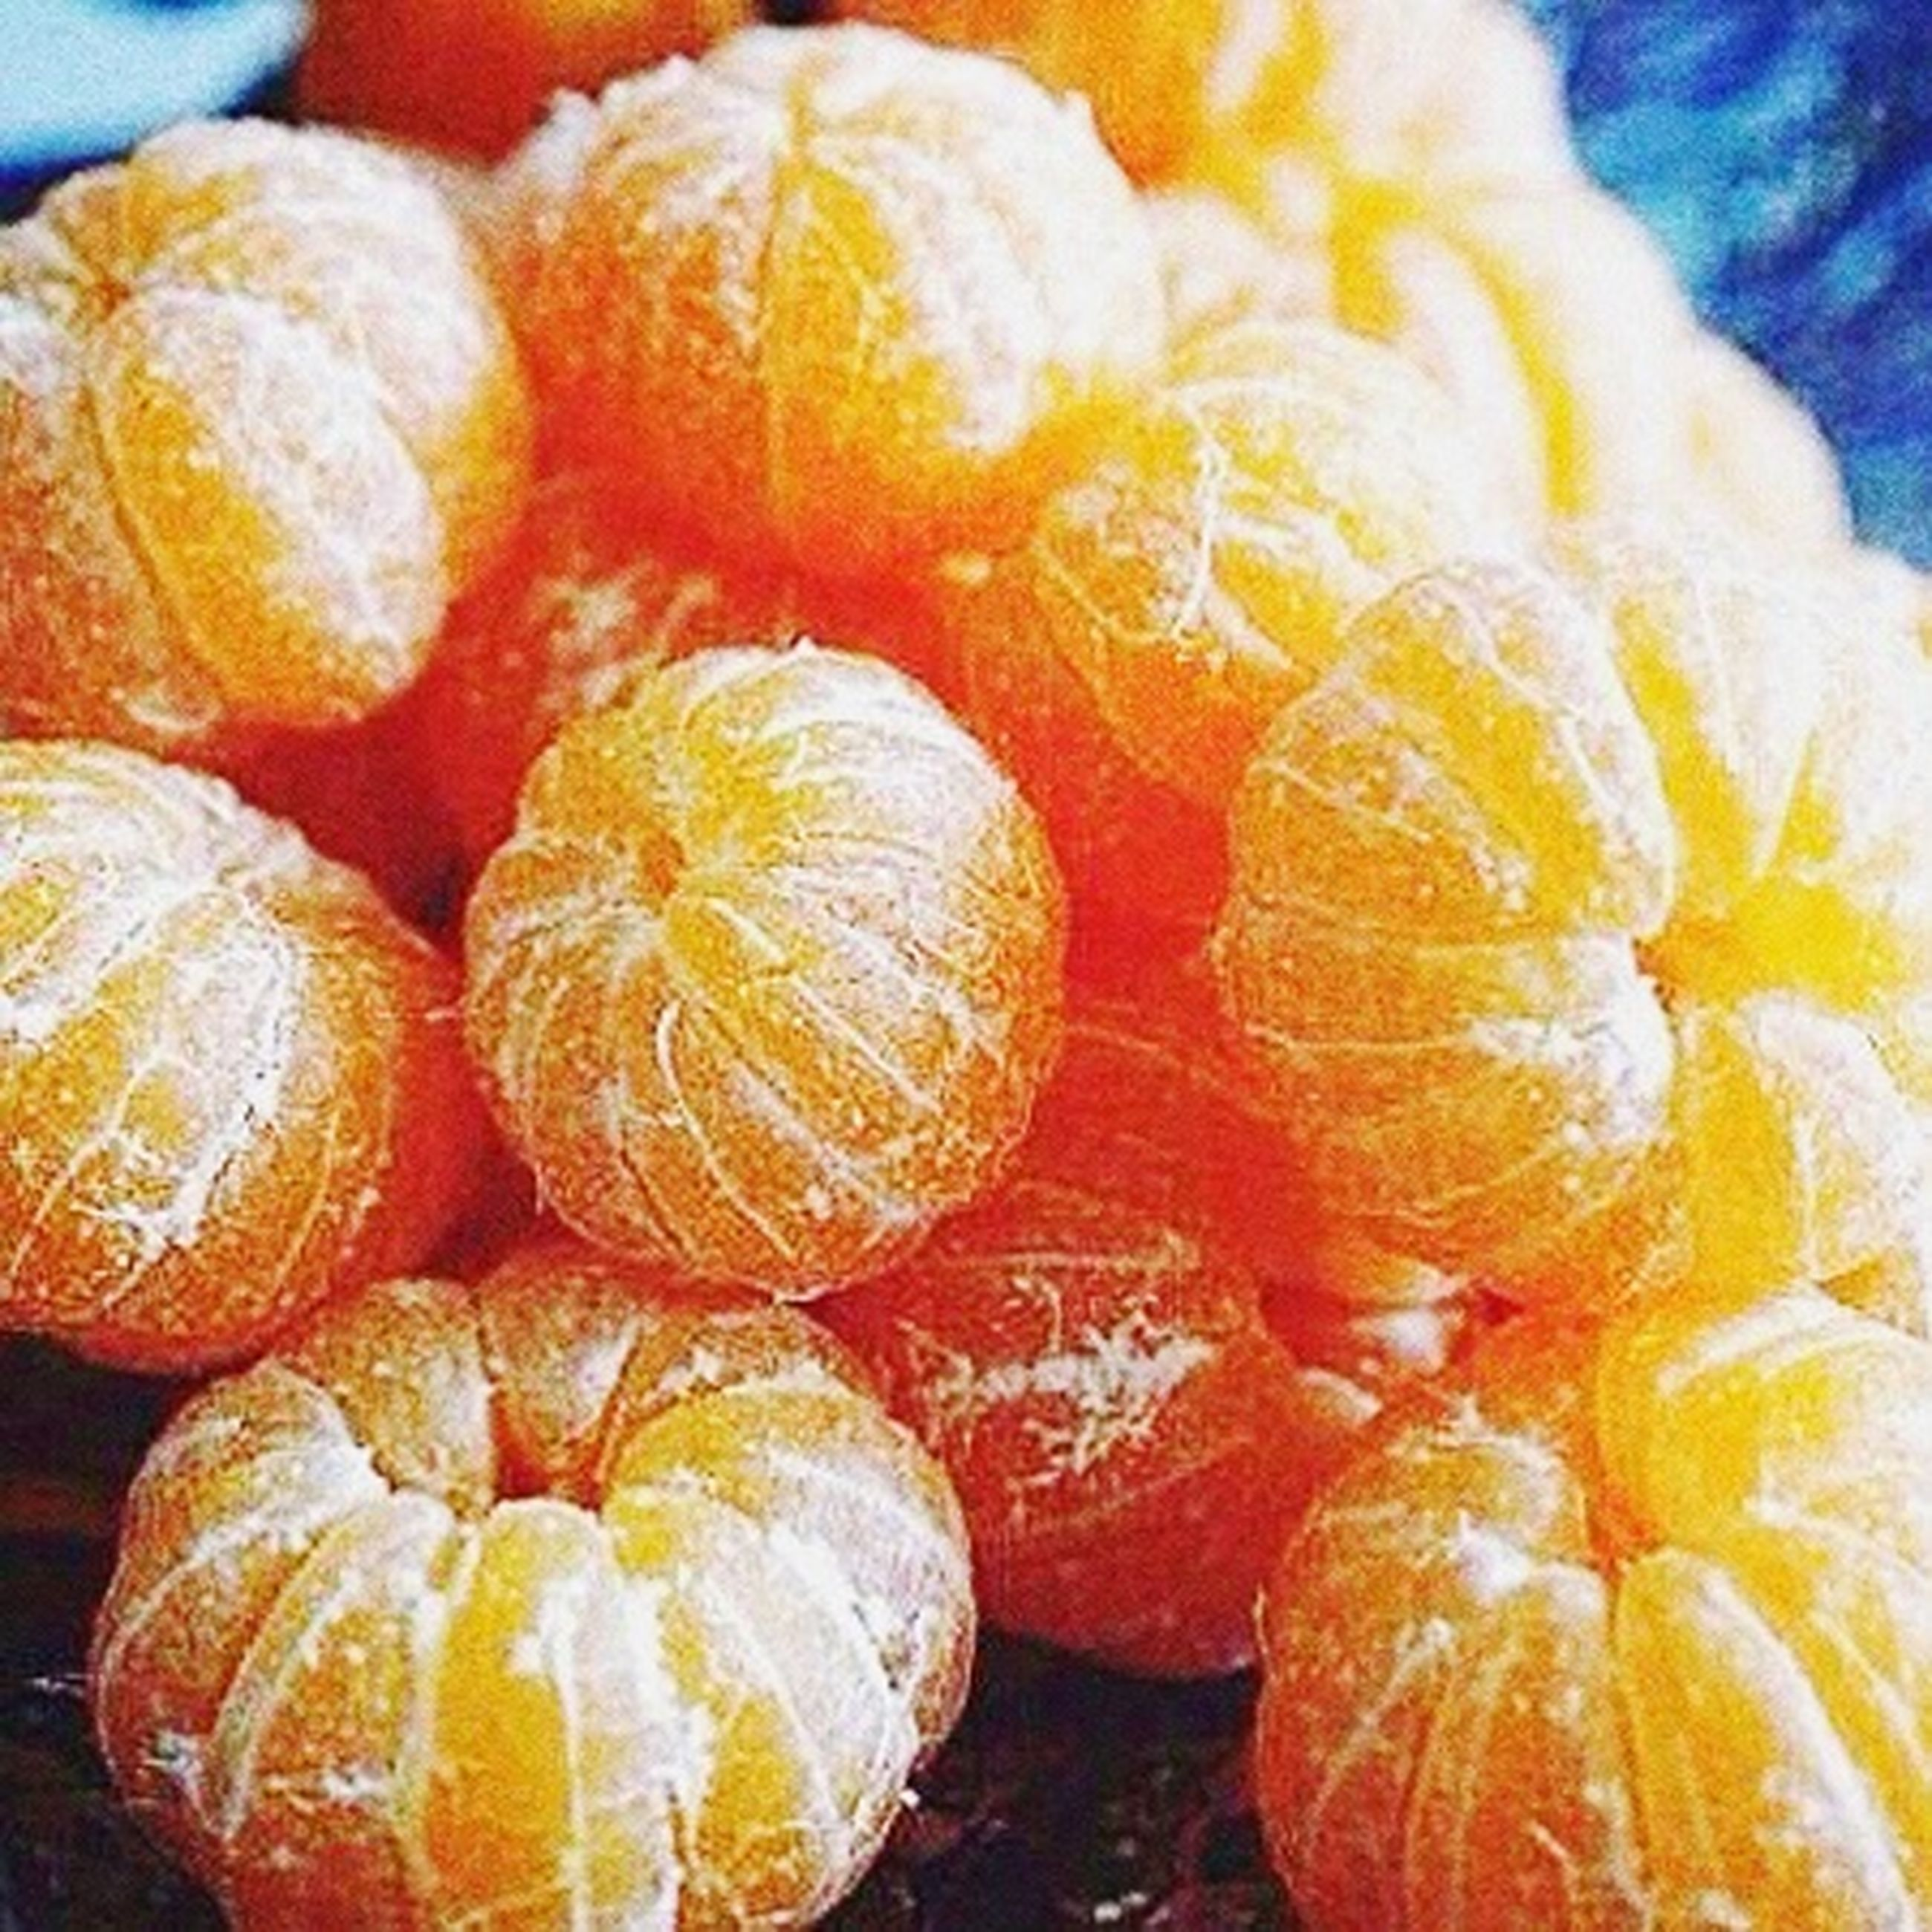 food and drink, food, healthy eating, orange color, fruit, freshness, close-up, no people, indoors, day